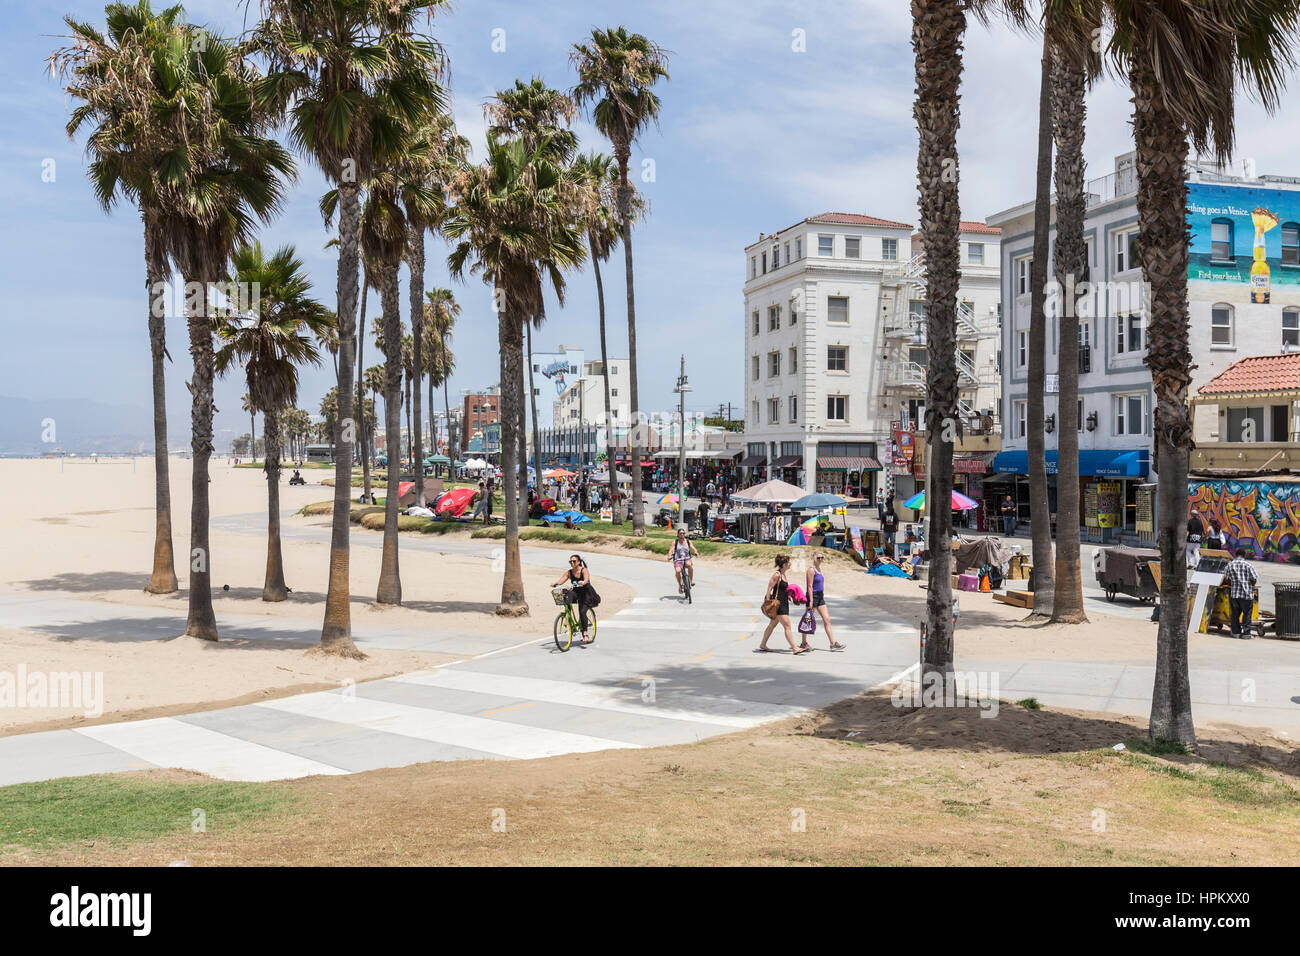 Editorial View Of The Venice Beach Boardwalk Bike Path In Los